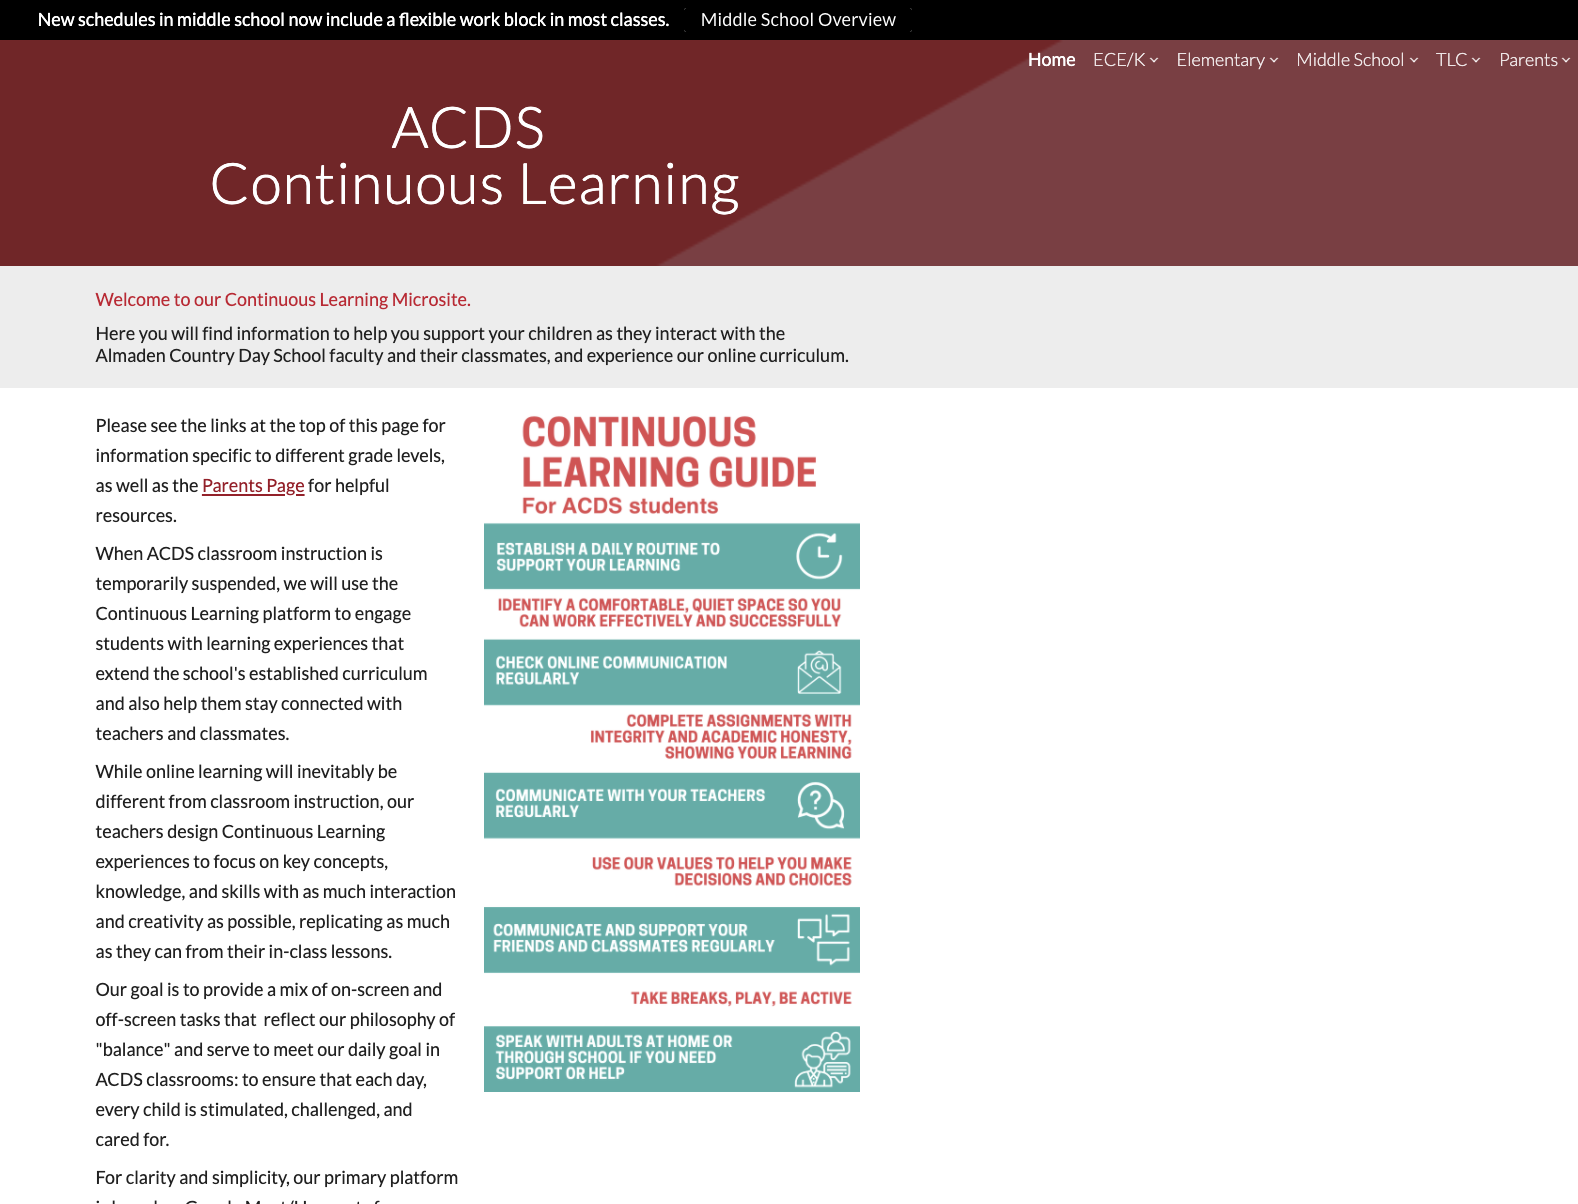 Continuous Learning microsite homepage image